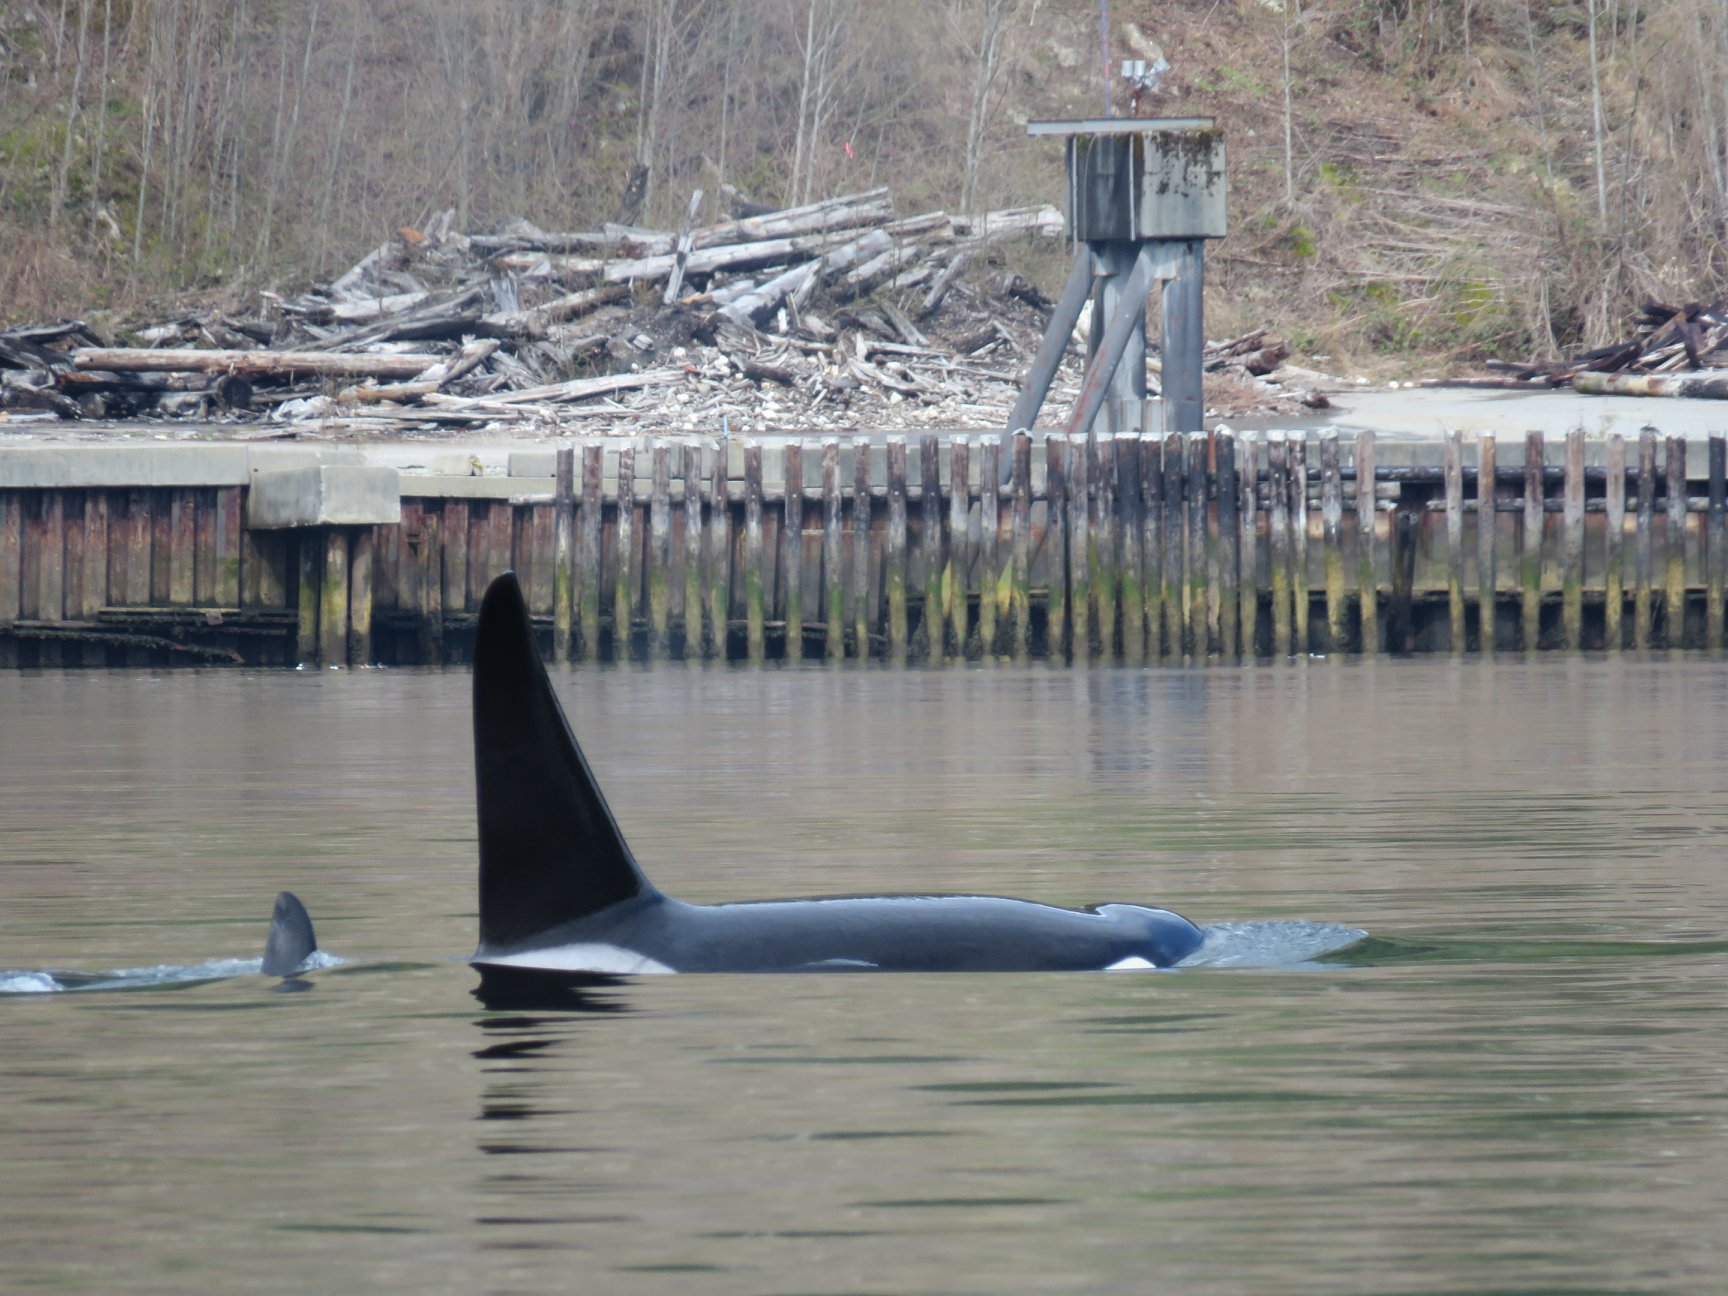 After some hunting, T102, a 34 year old male surfaces near Squamish in Howe Sound. Photo by Rodrigo Menezes, cropped and zoomed.